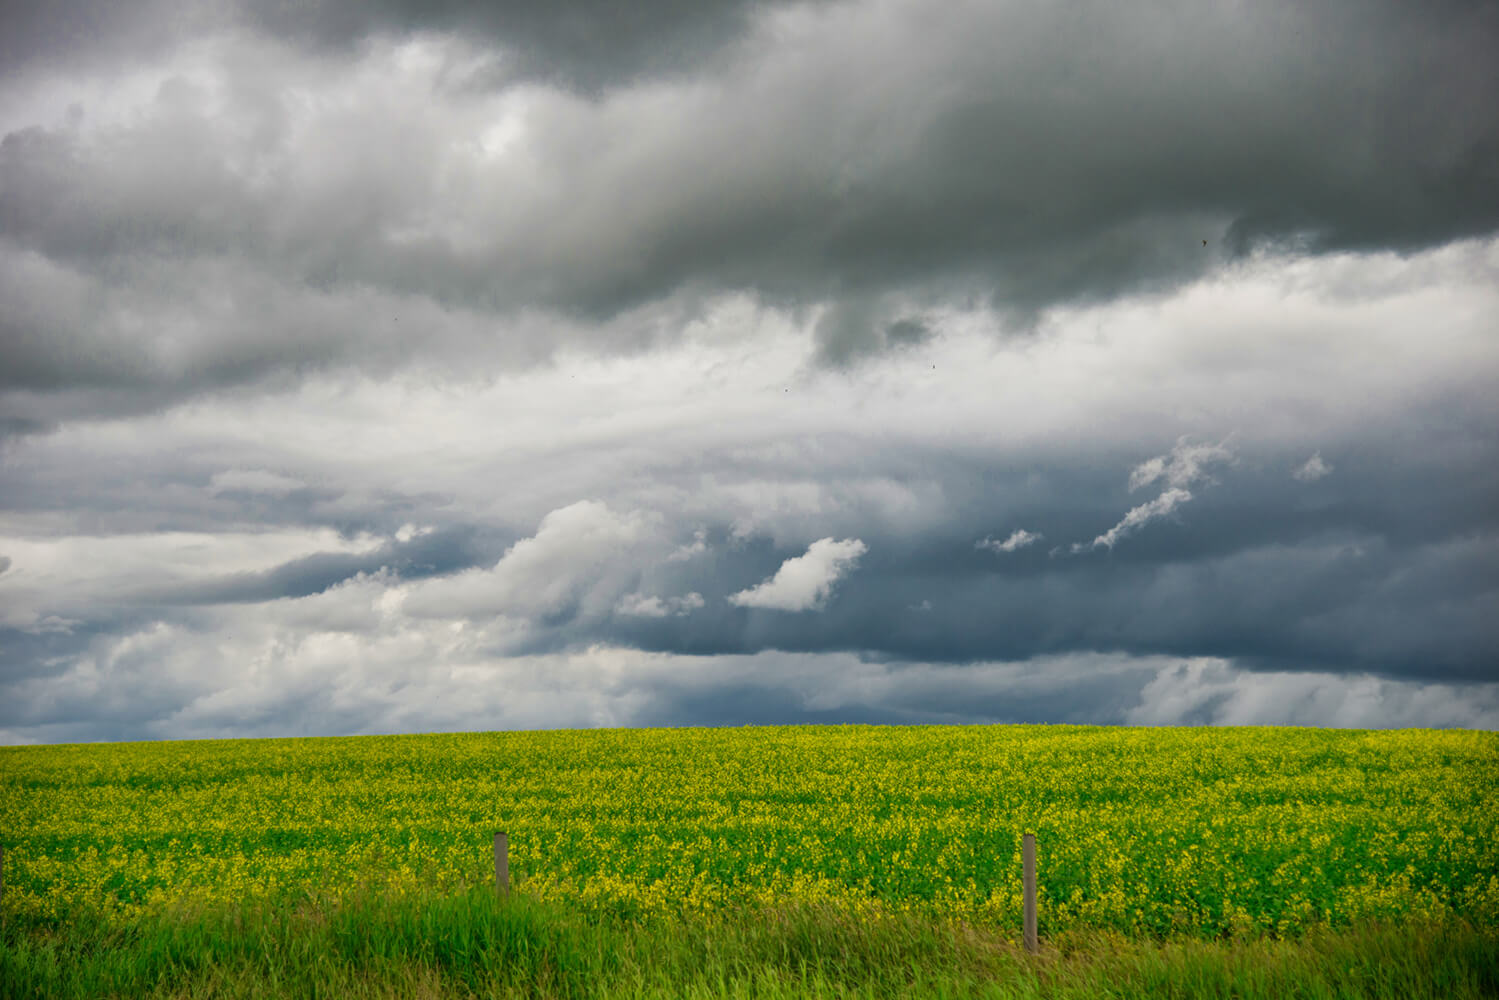 Storm Over the Canola